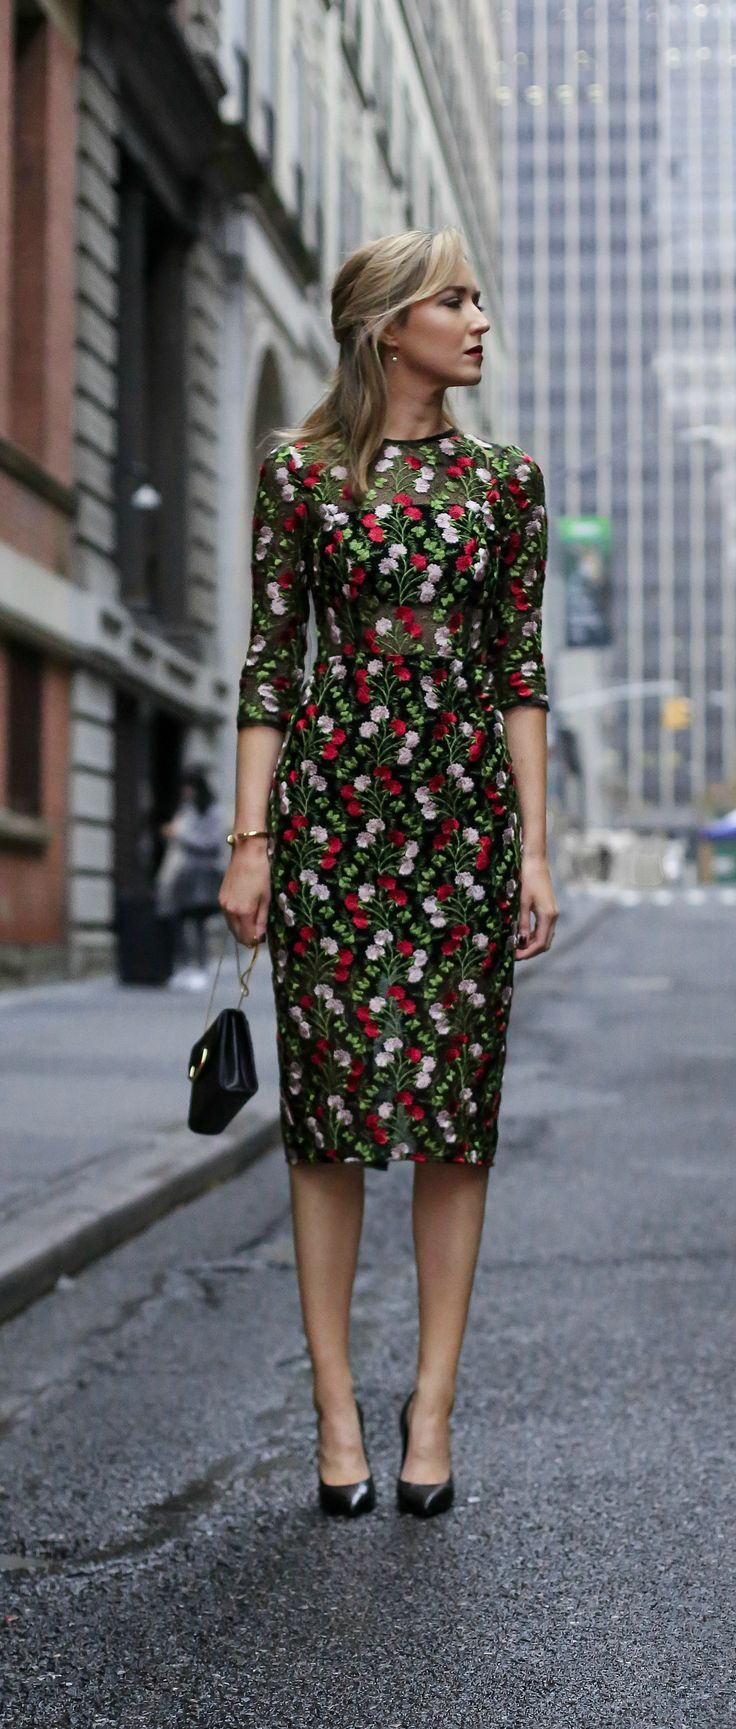 green, red and pale pink embroidered midi length cocktail sheath dress with sheer panels perfect for cocktail attire office holiday parties